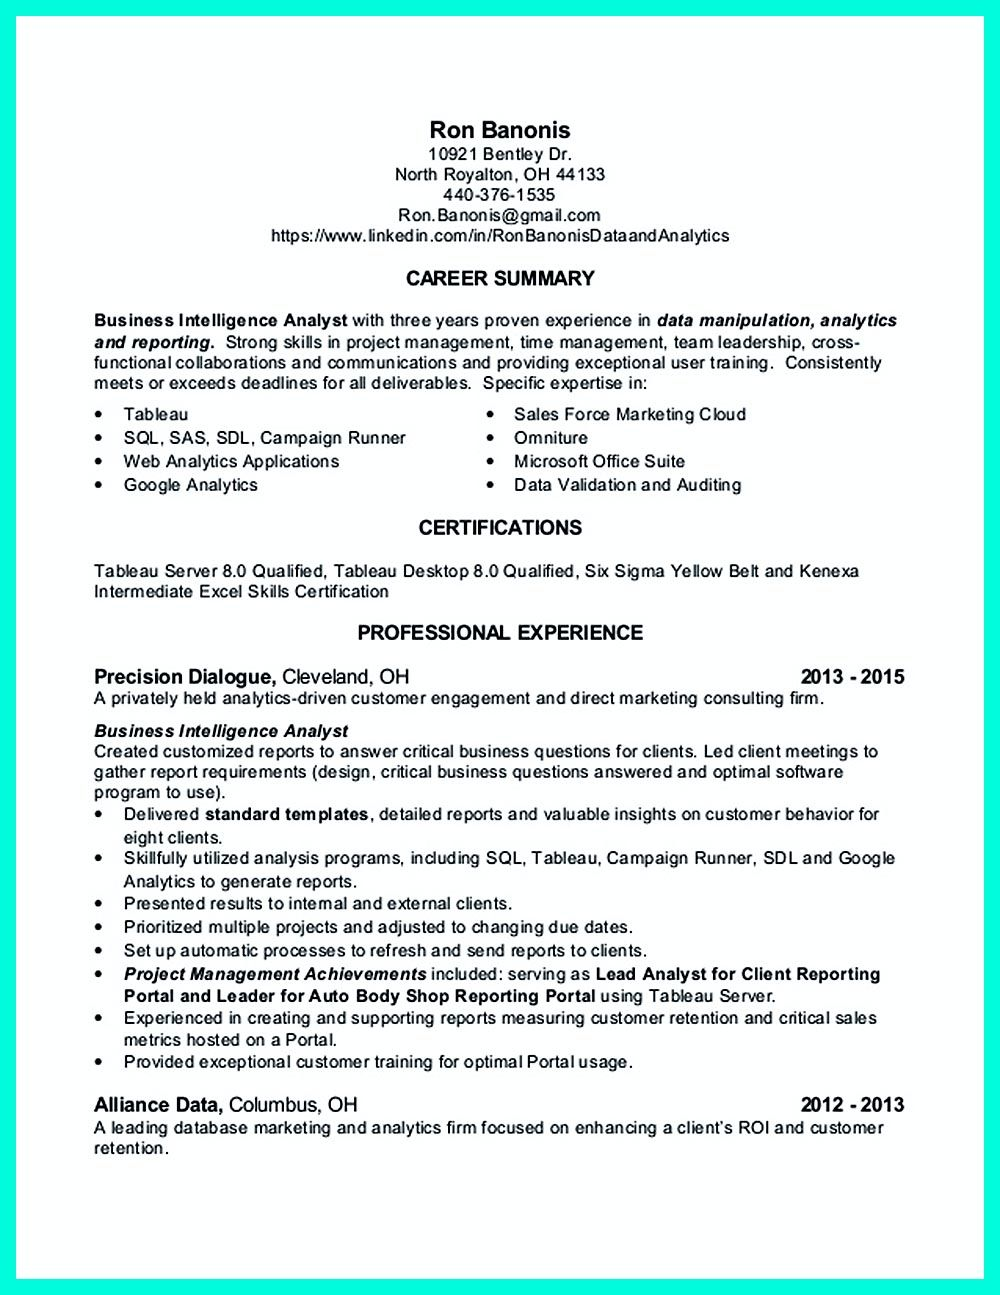 Data analyst resume will describe your professional profile, skills, education and experience. The job seeker will analyze and interpret the date crea... resume of data analyst and keywords for data analyst resume Check more at http://www.resume88.com/high-quality-data-analyst-resume-sample-professionals/